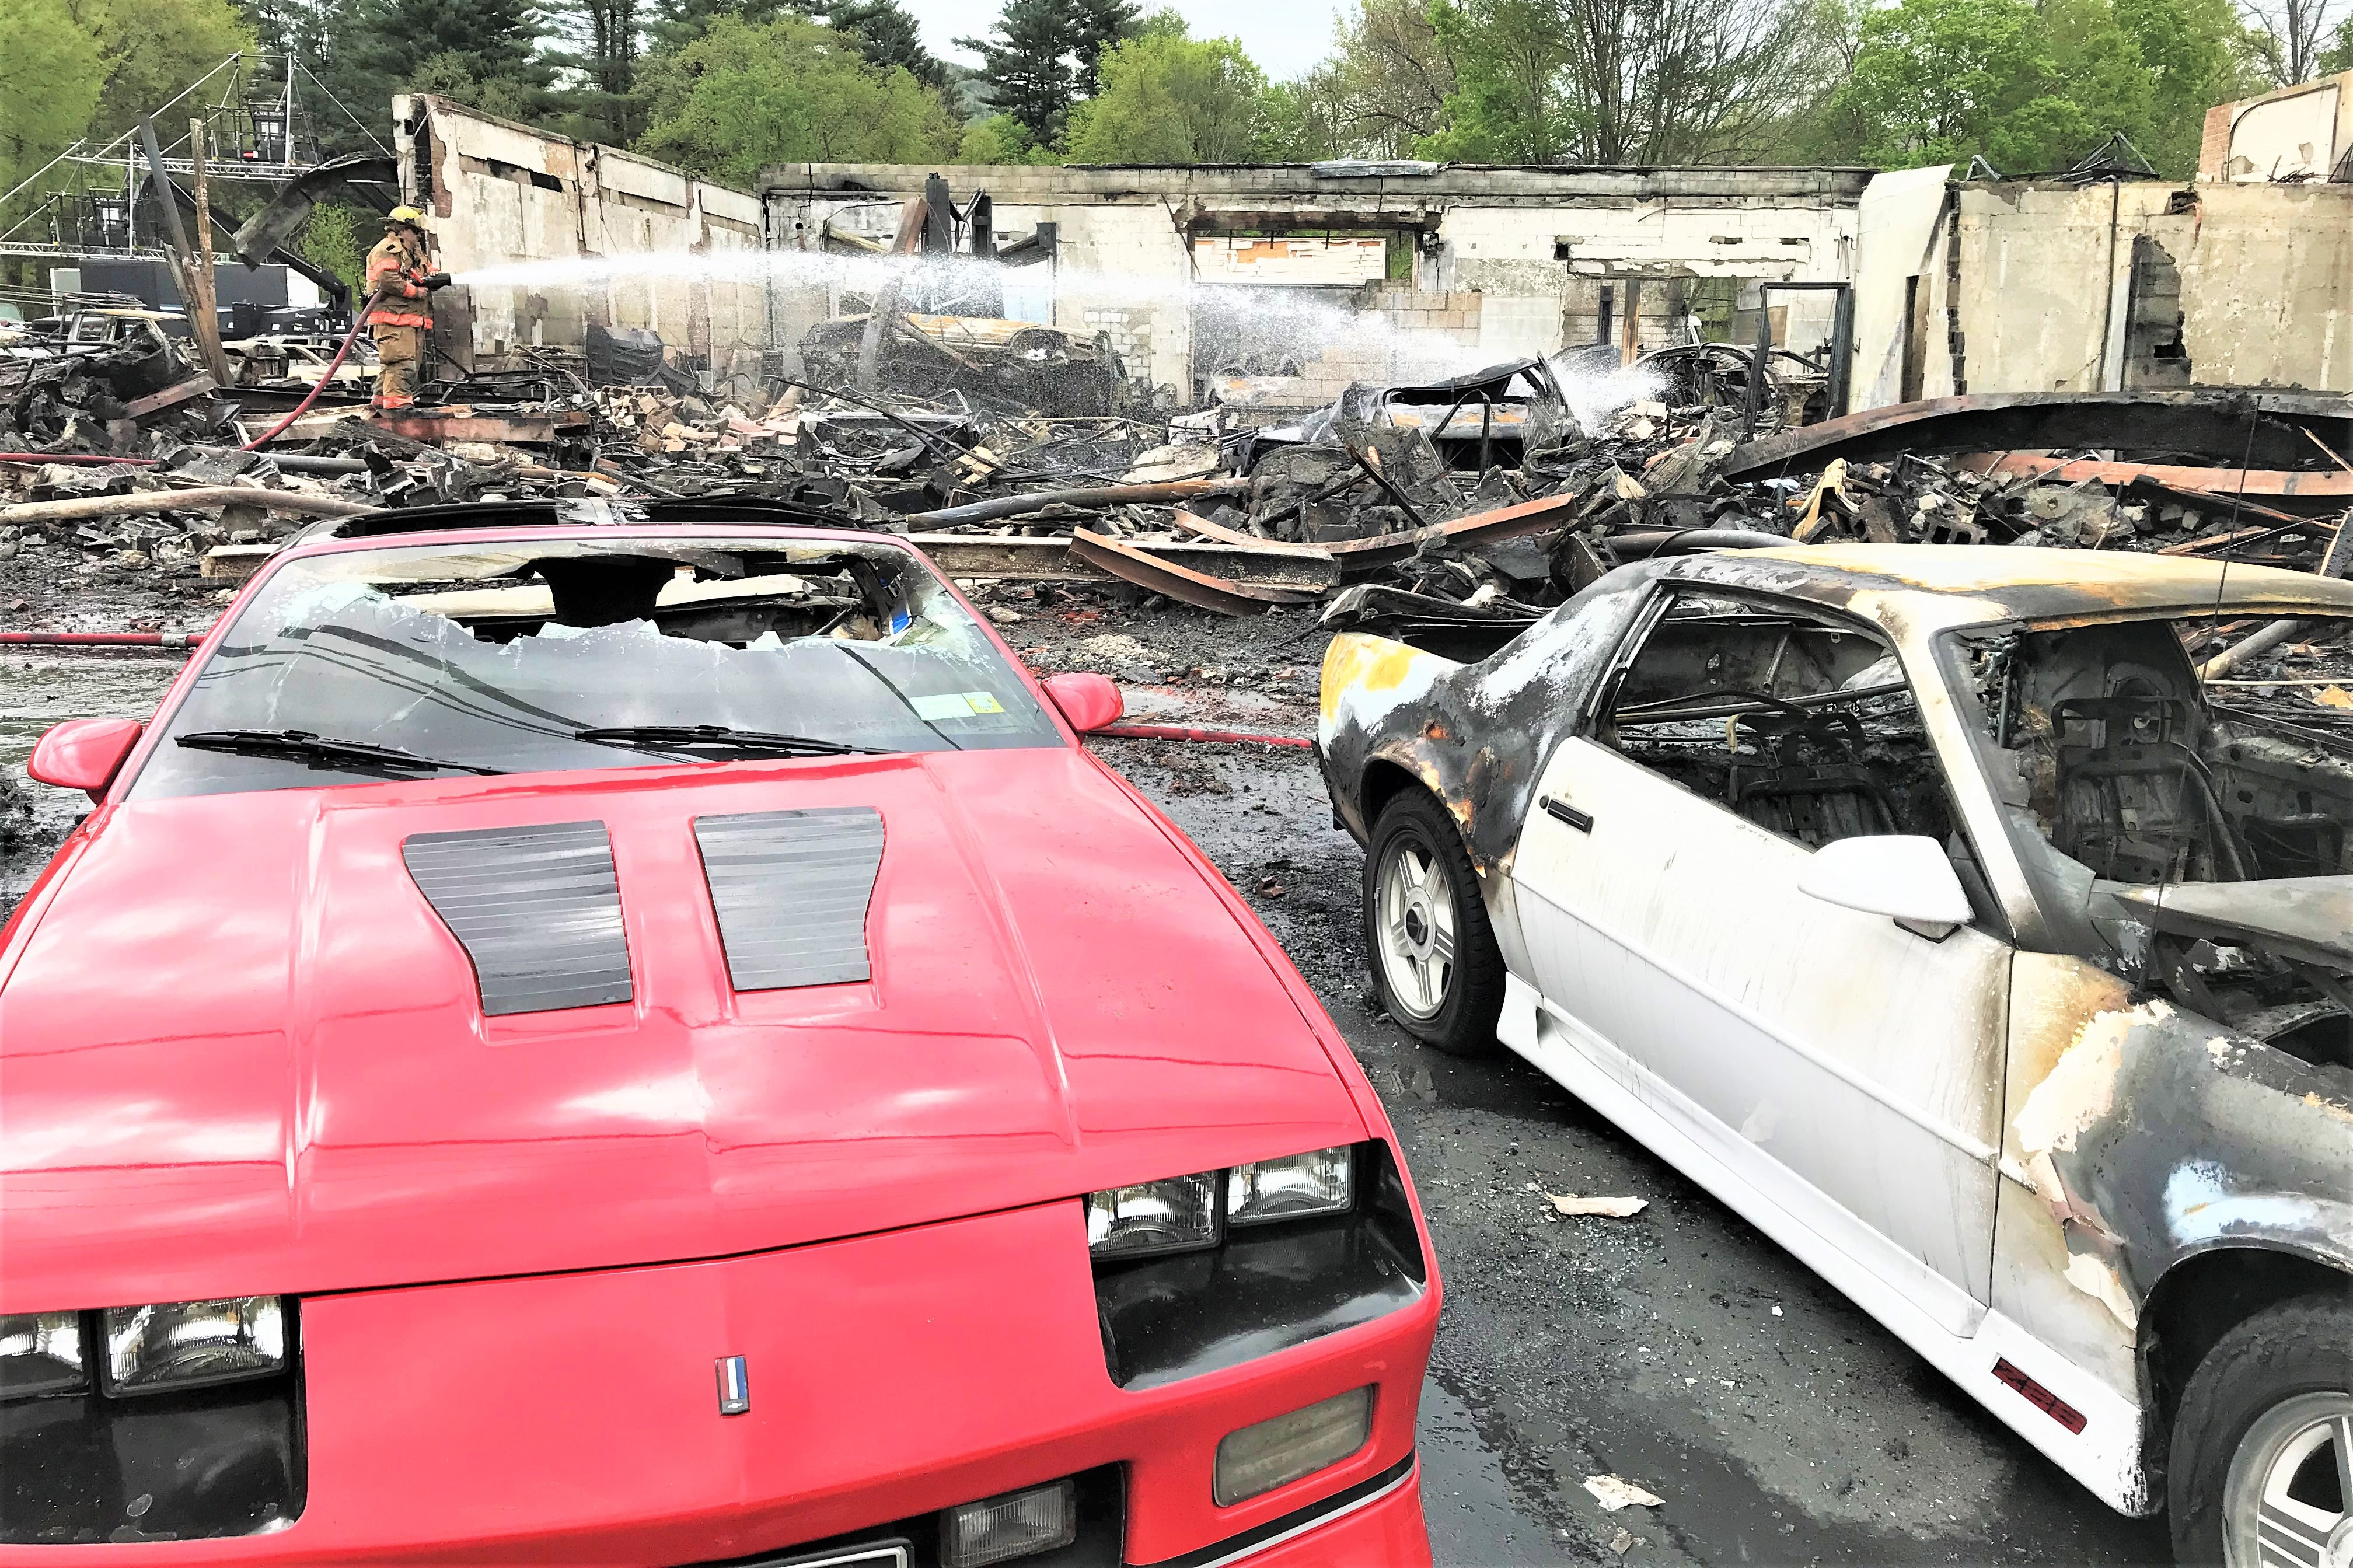 Car Dealerships In Norman Ok >> Pristine Vintage Chevrolets Incinerated in Fire on HBO ...